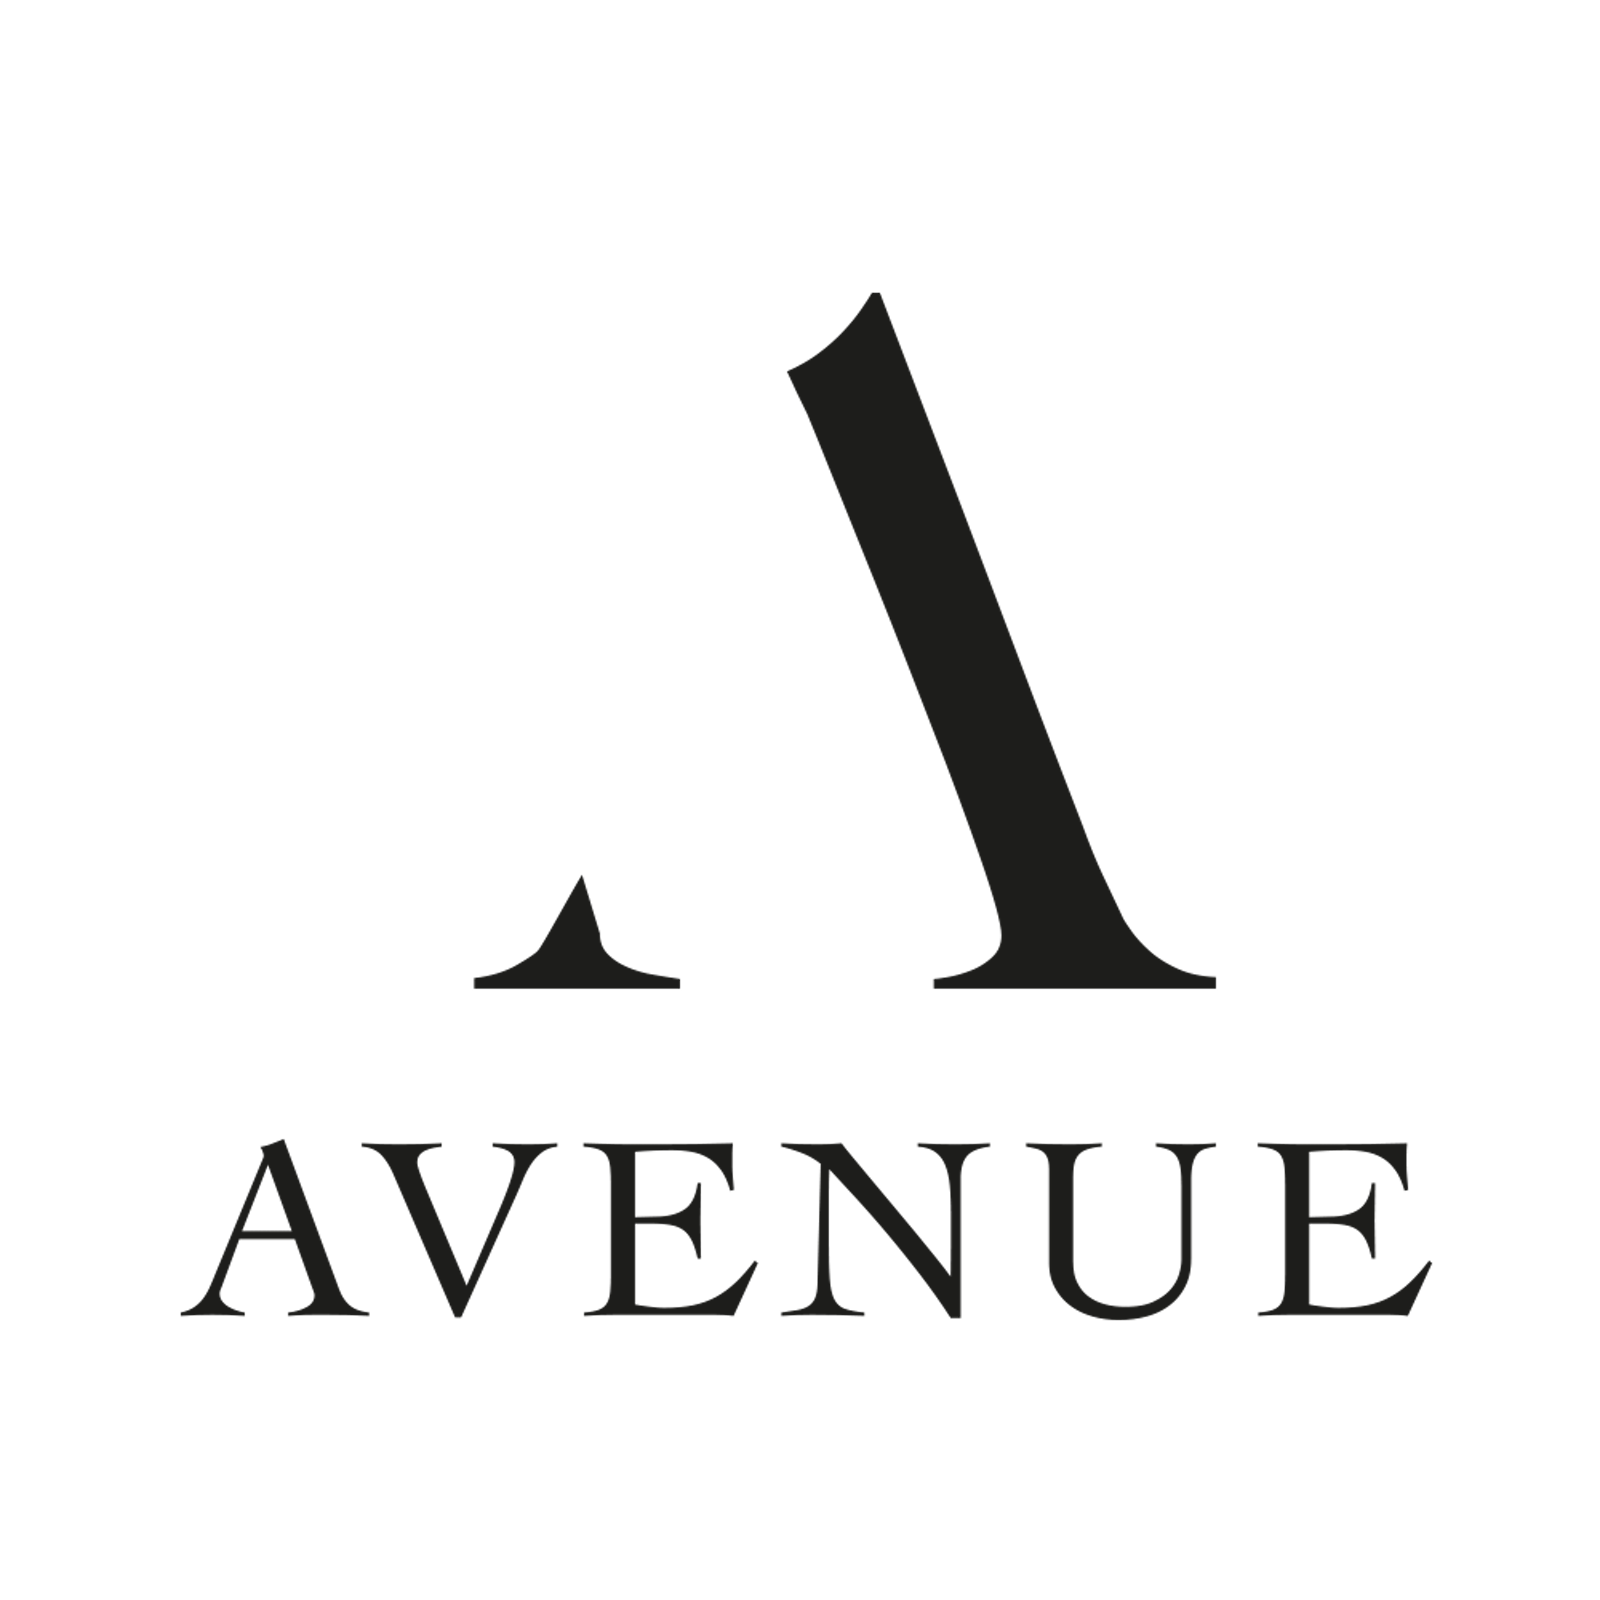 Avenue Logo Black